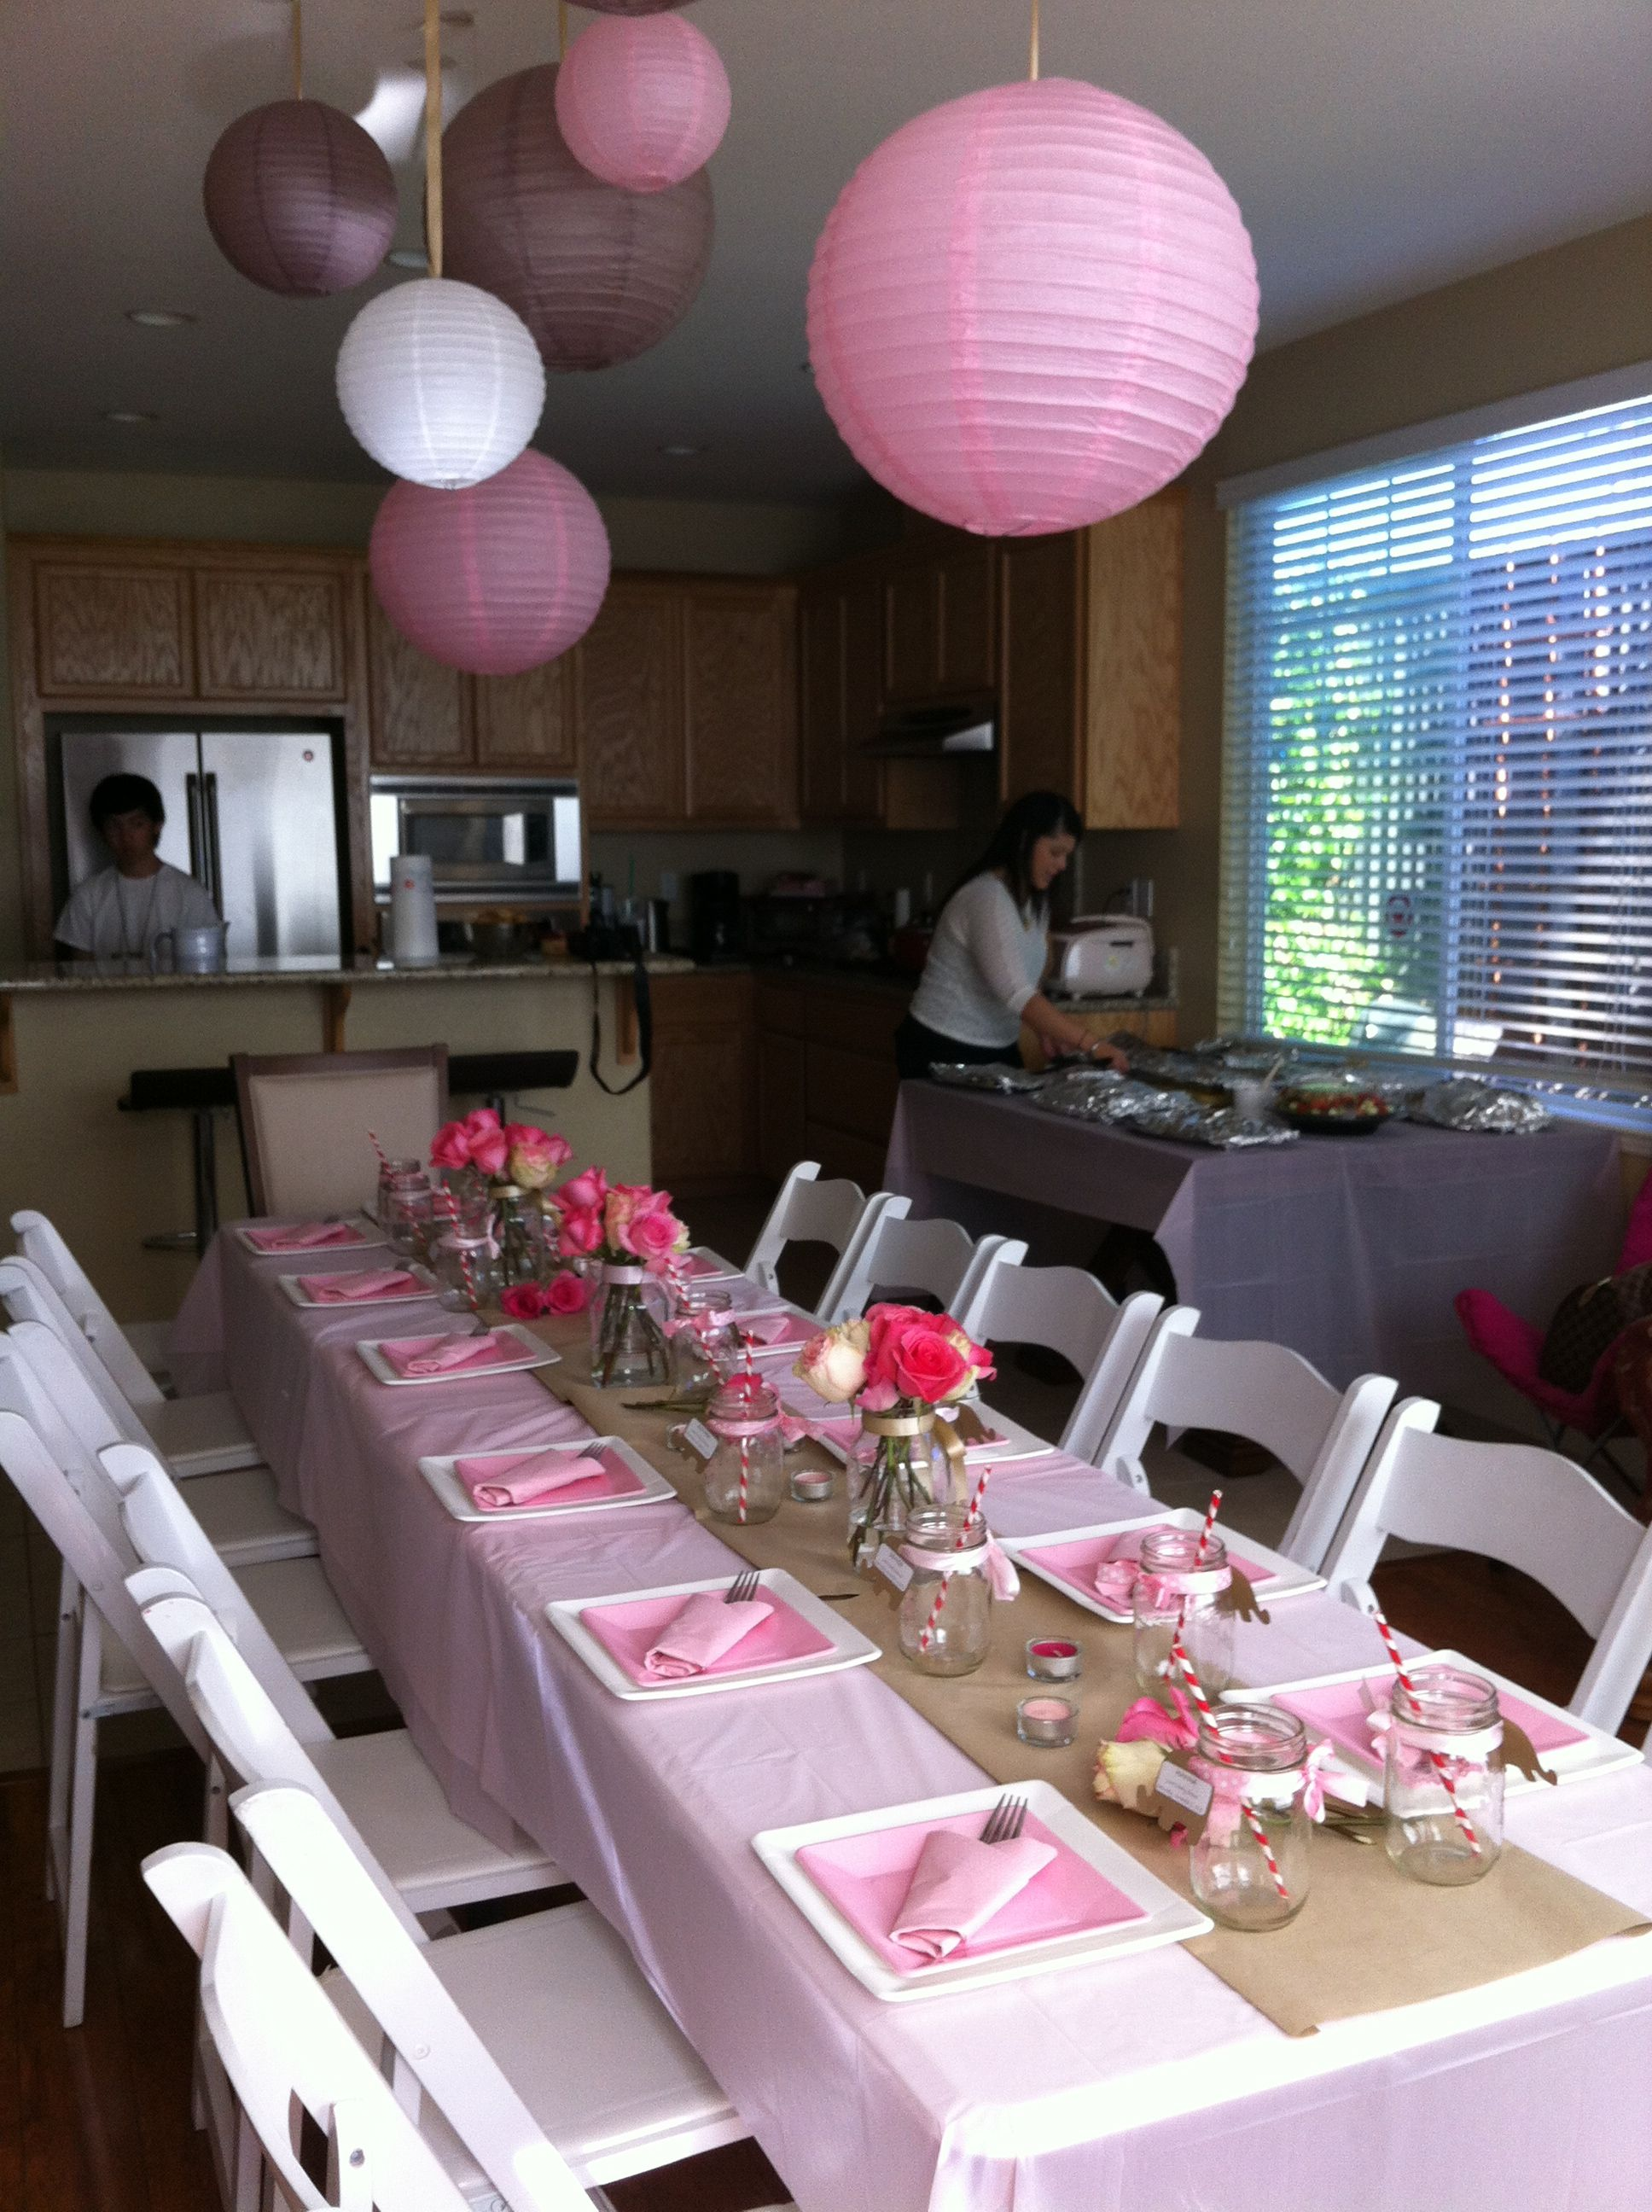 Juna S Baby Shower Table Setting Theme Pink Tan White And Elephants